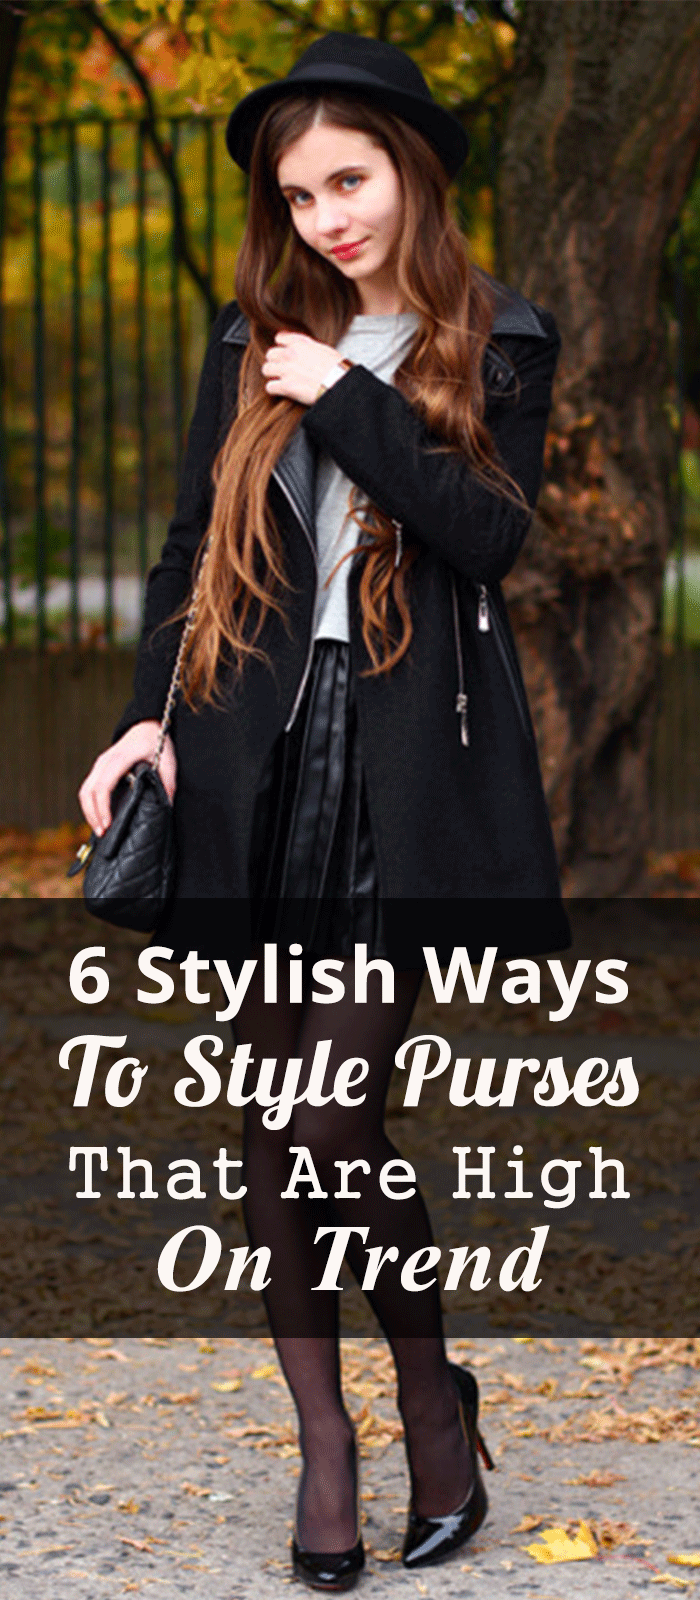 6 Stylish Ways To Style Purses That Are High On Trend